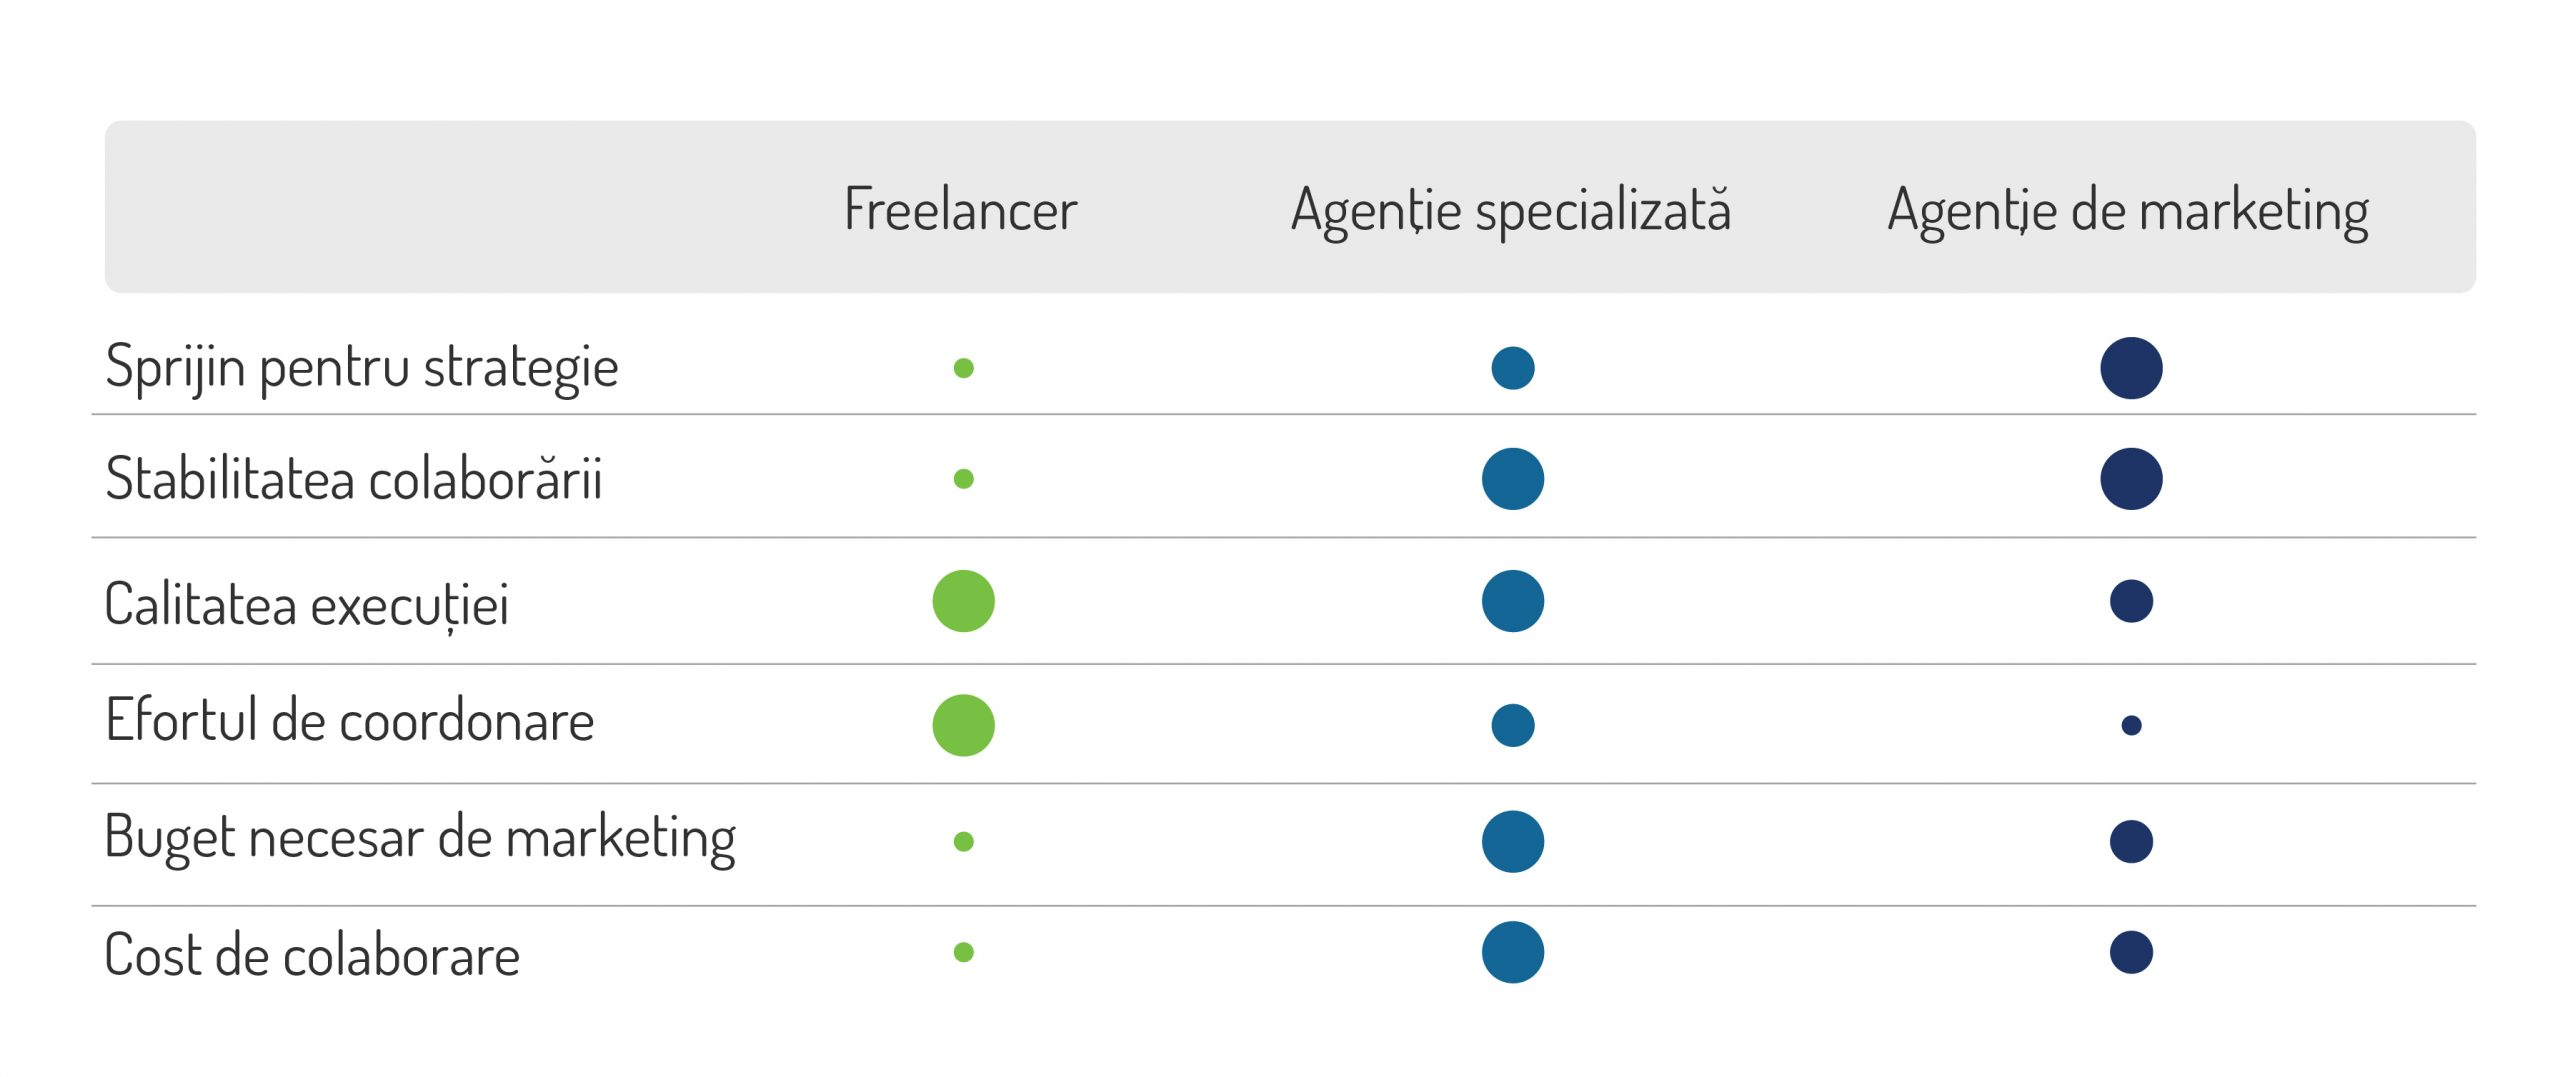 Freelancer. Agenție specializată. Agenție marketing